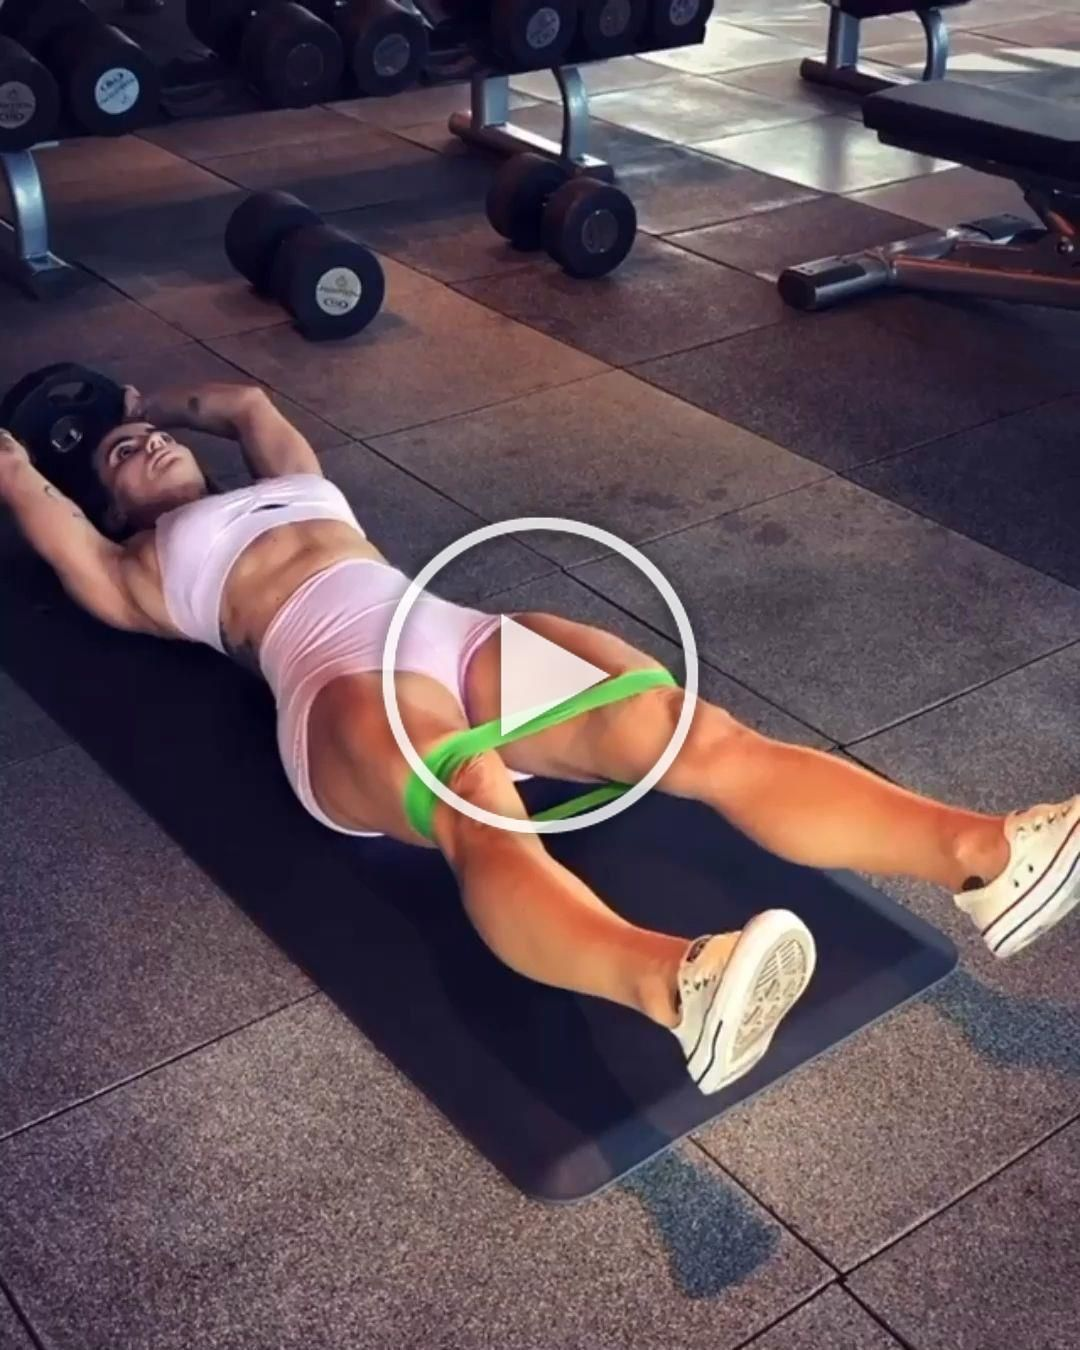 Exercises Using Resistance Bands -  fitness motivation - #Bands #Exercises #fitness #fitnessmotivati...